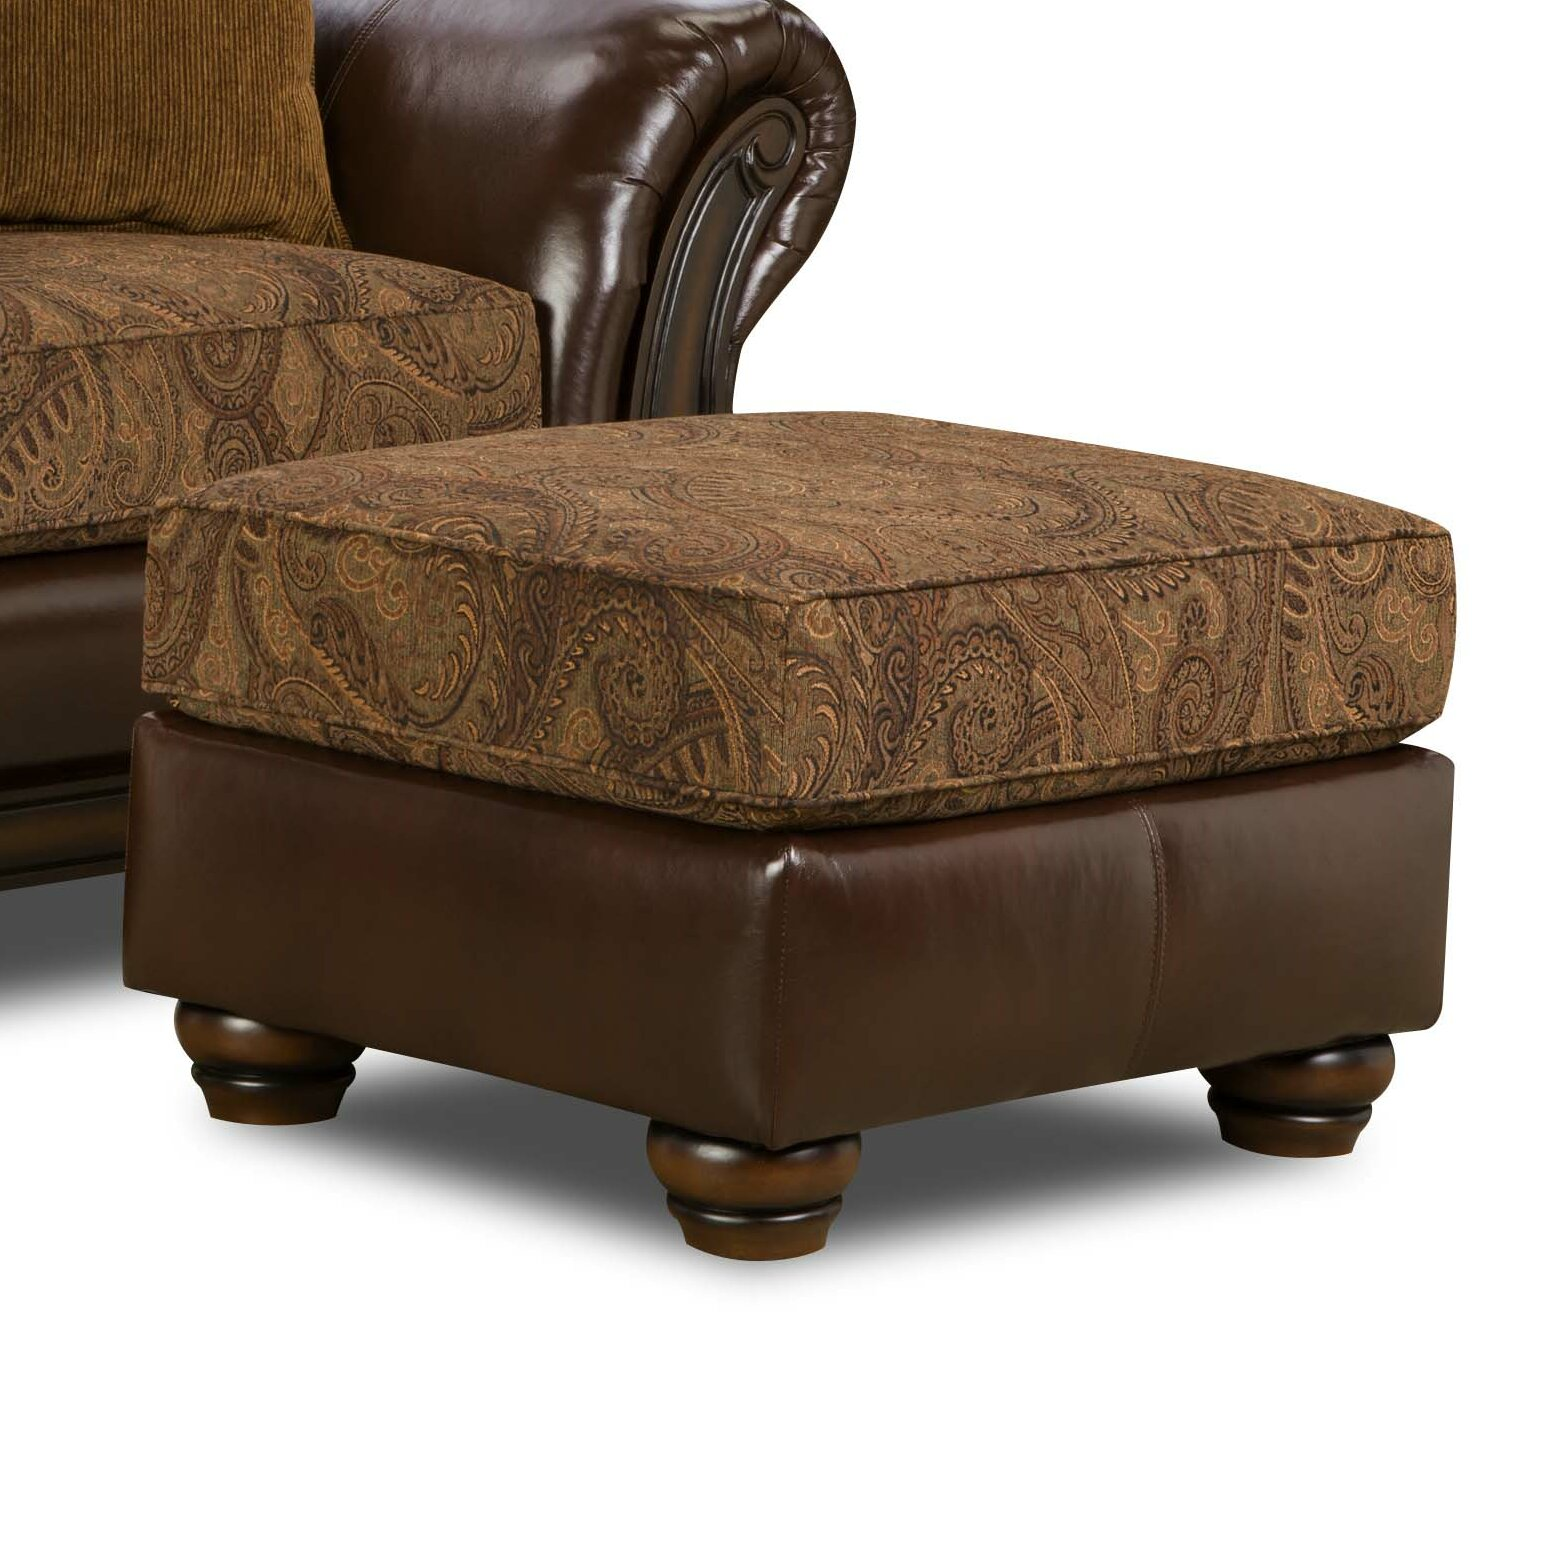 astoria grand simmons upholstery aske ottoman reviews wayfair. Black Bedroom Furniture Sets. Home Design Ideas